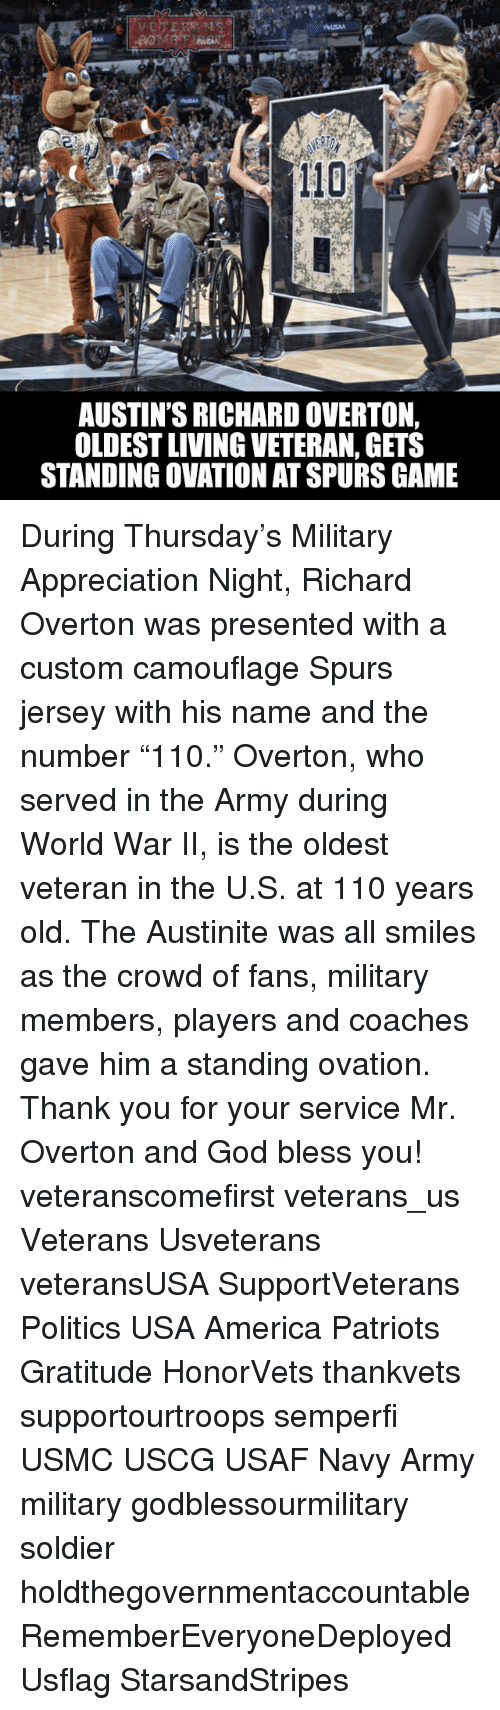 """America, Andrew Bogut, and God: USAA  110  AUSTIN'S RICHARD OVERTON,  OLDESTLIVING VETERAN, GETS  STANDING OVATION ATSPURS GAME During Thursday's Military Appreciation Night, Richard Overton was presented with a custom camouflage Spurs jersey with his name and the number """"110."""" Overton, who served in the Army during World War II, is the oldest veteran in the U.S. at 110 years old. The Austinite was all smiles as the crowd of fans, military members, players and coaches gave him a standing ovation. Thank you for your service Mr. Overton and God bless you! veteranscomefirst veterans_us Veterans Usveterans veteransUSA SupportVeterans Politics USA America Patriots Gratitude HonorVets thankvets supportourtroops semperfi USMC USCG USAF Navy Army military godblessourmilitary soldier holdthegovernmentaccountable RememberEveryoneDeployed Usflag StarsandStripes"""